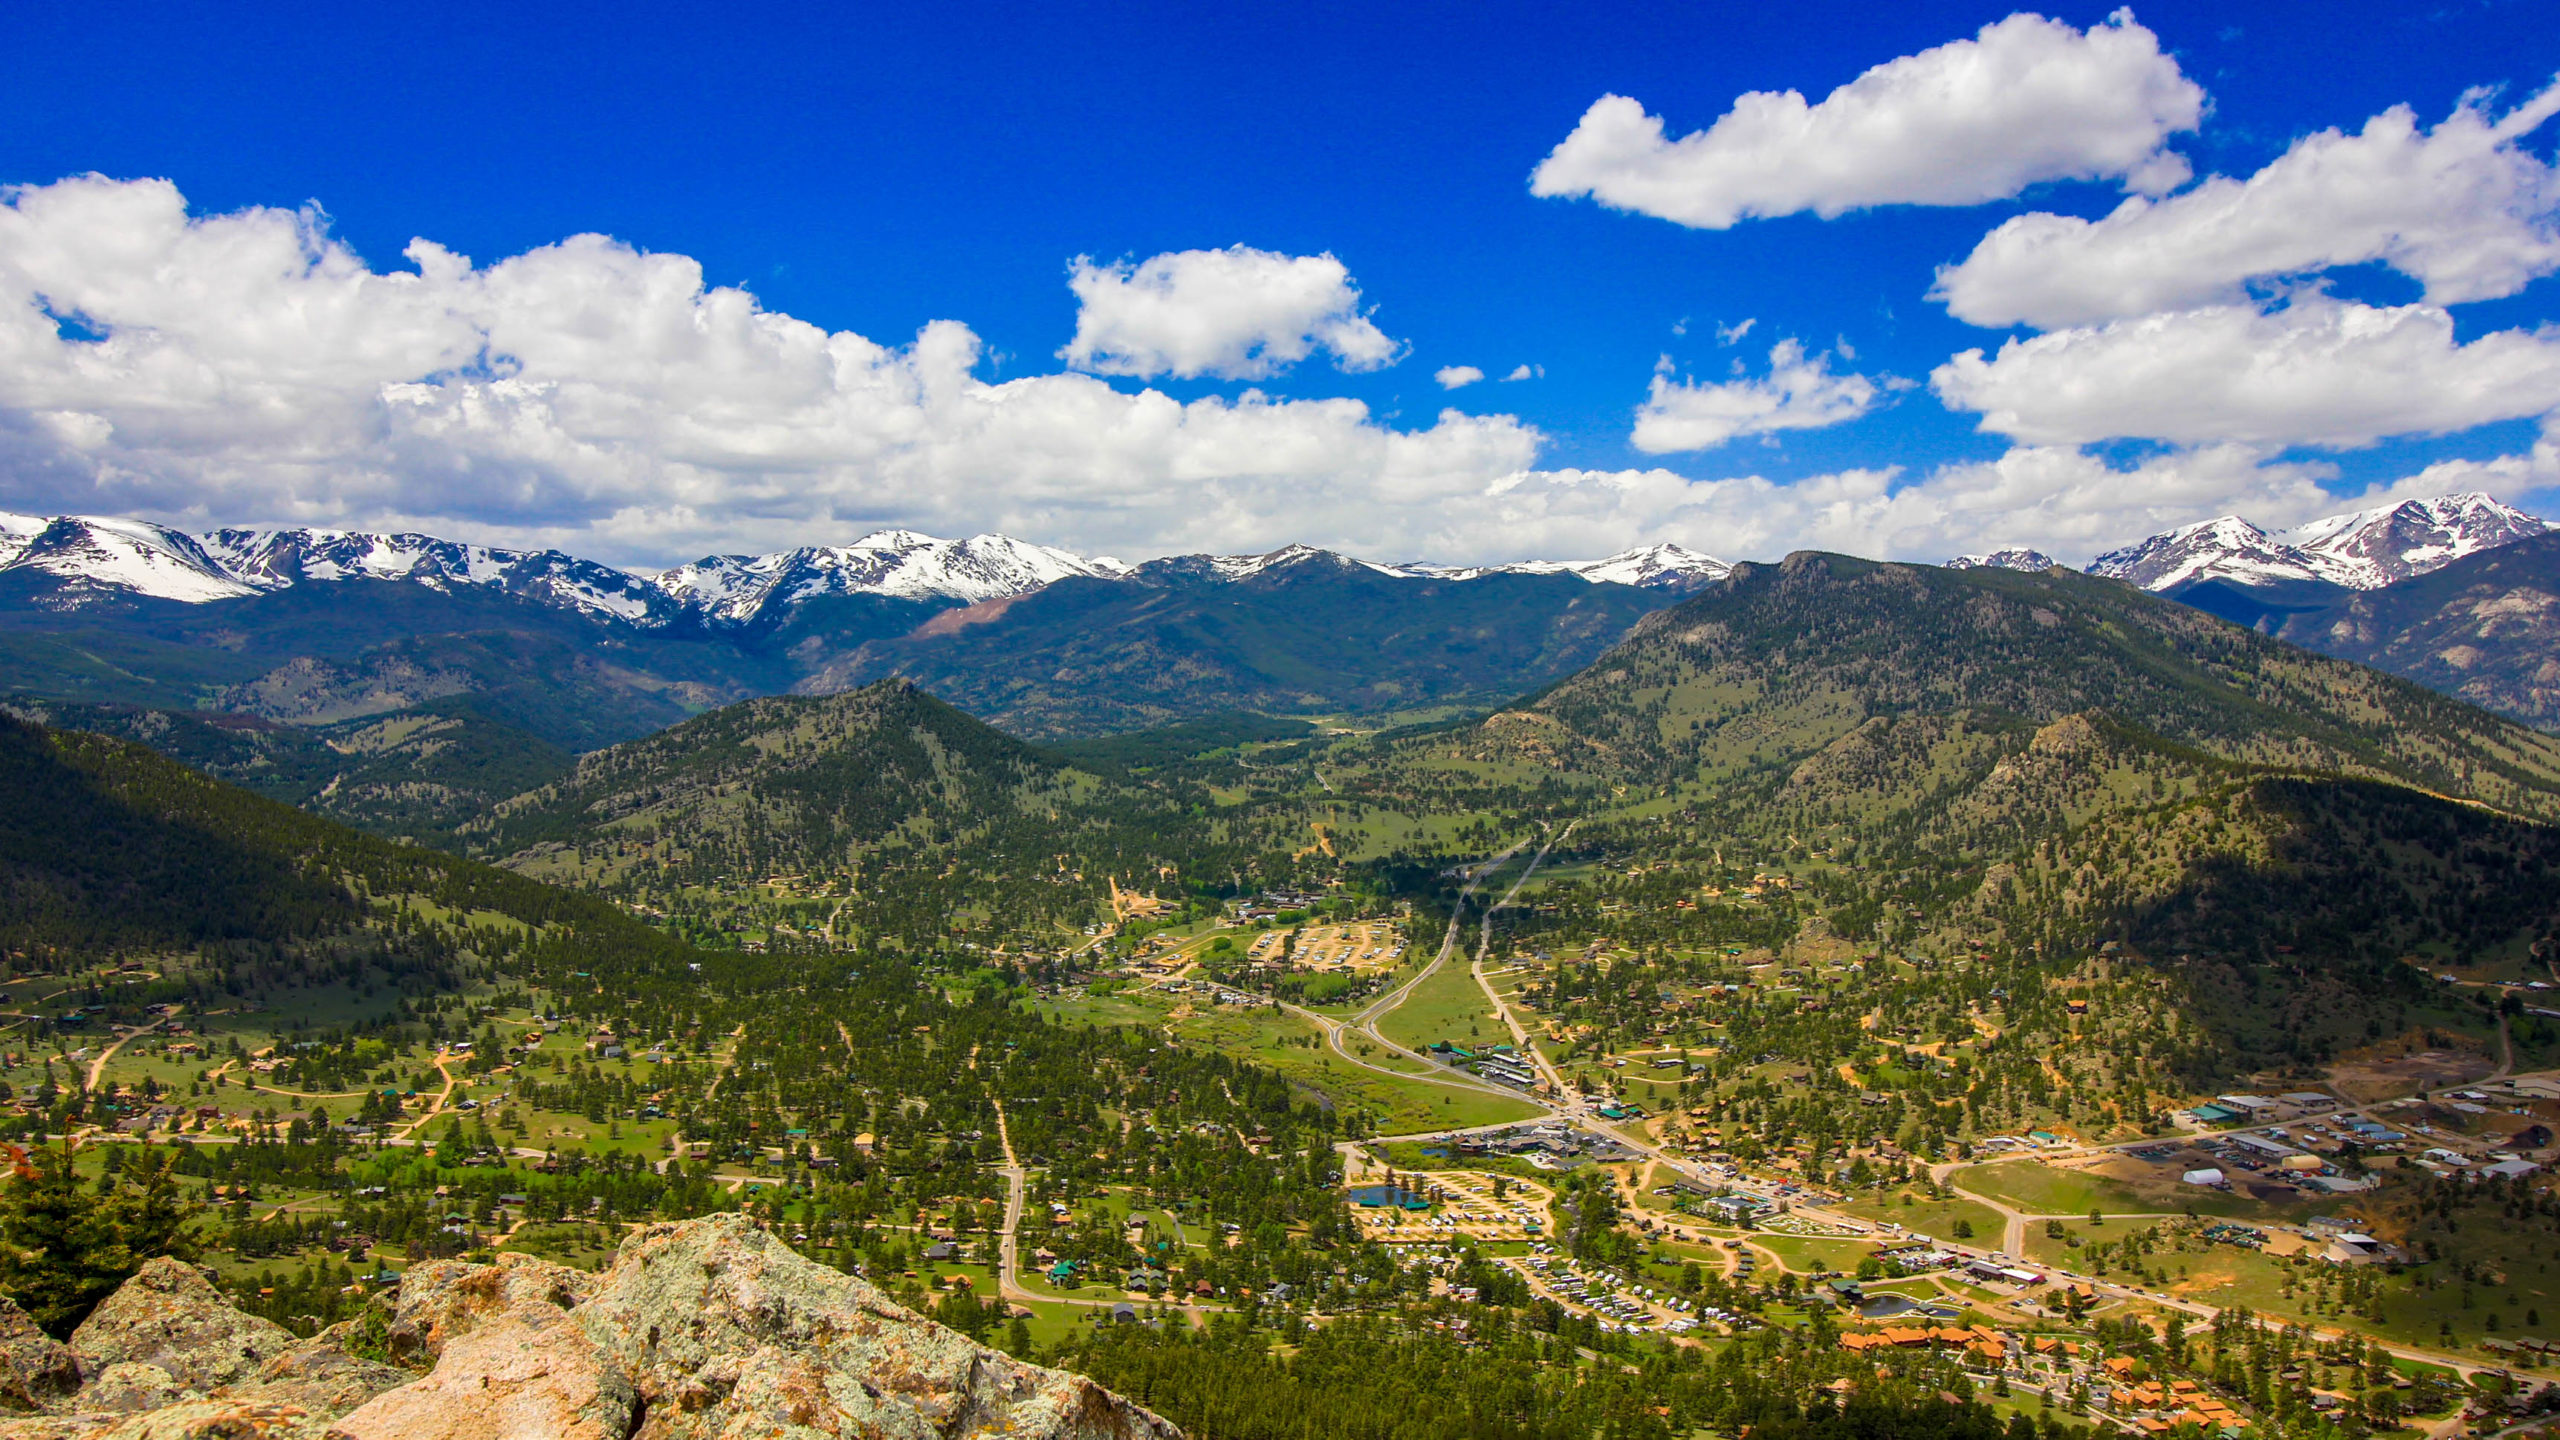 This is an aerial image looking west up to Beaver Meadows Entrance into Rocky Mountain National Park. This main entrance into the park is less than 3 miles away from This Mountain Life Basecamp.